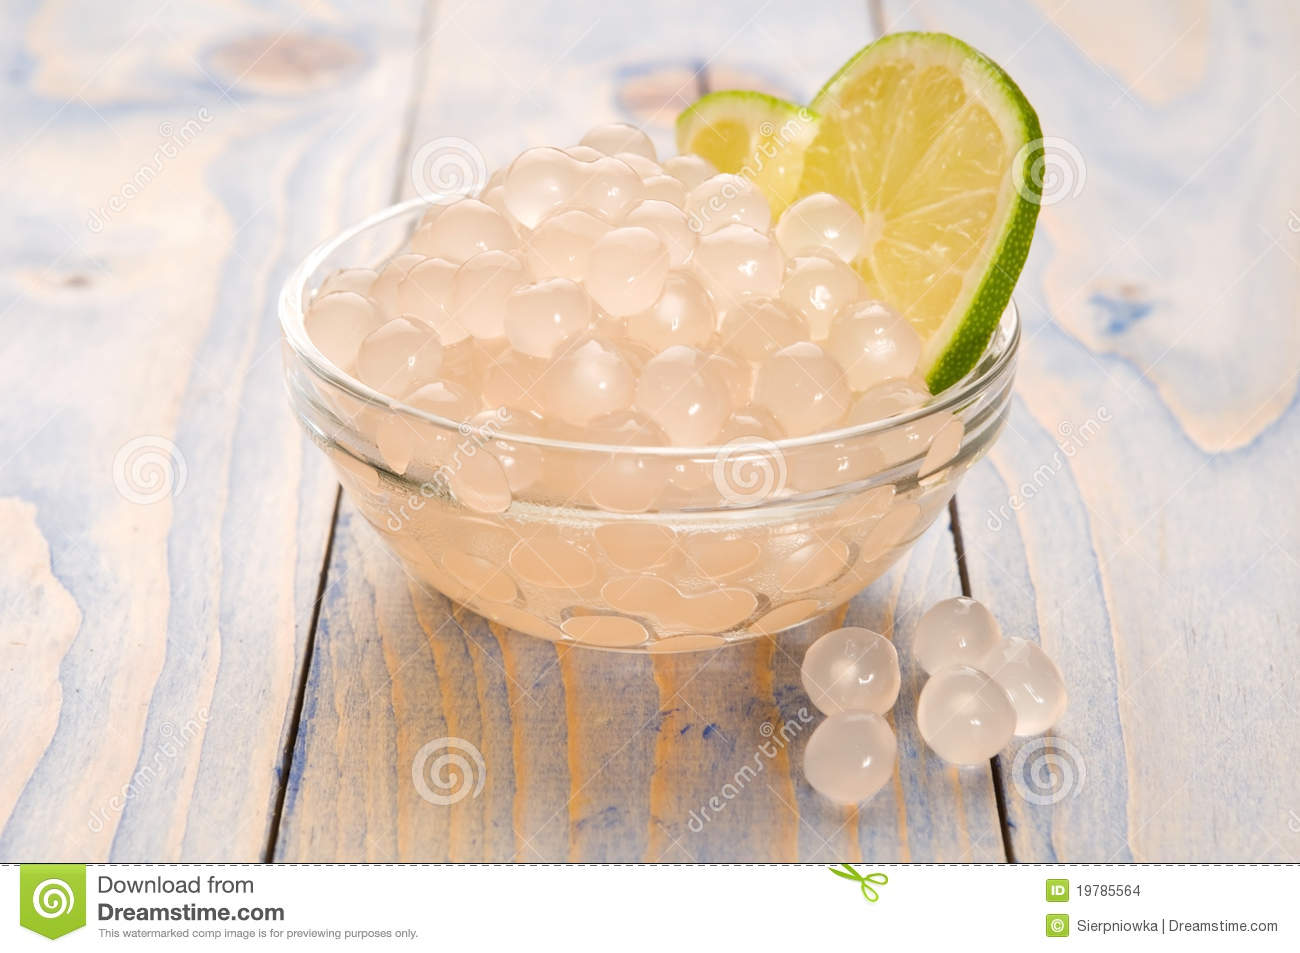 Tapioca pearls with lime. bubble tea